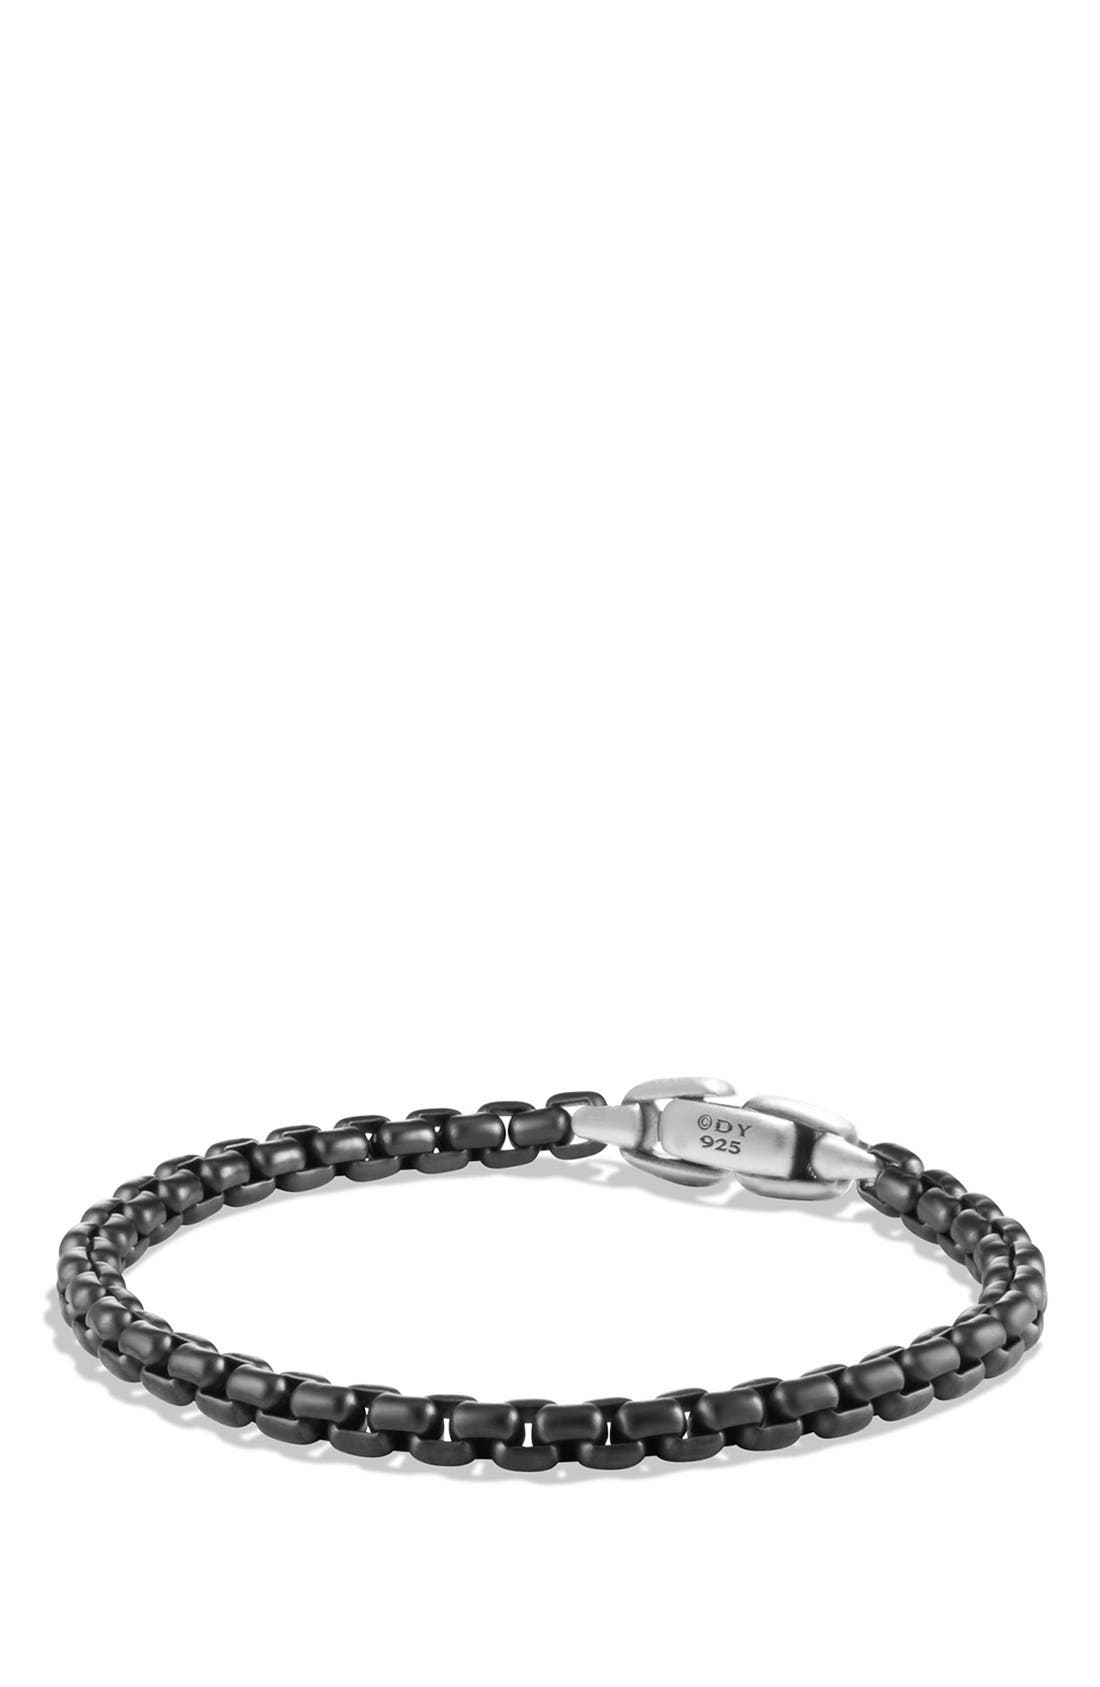 Box Chain Bracelet,                         Main,                         color, STAINLESS STEEL